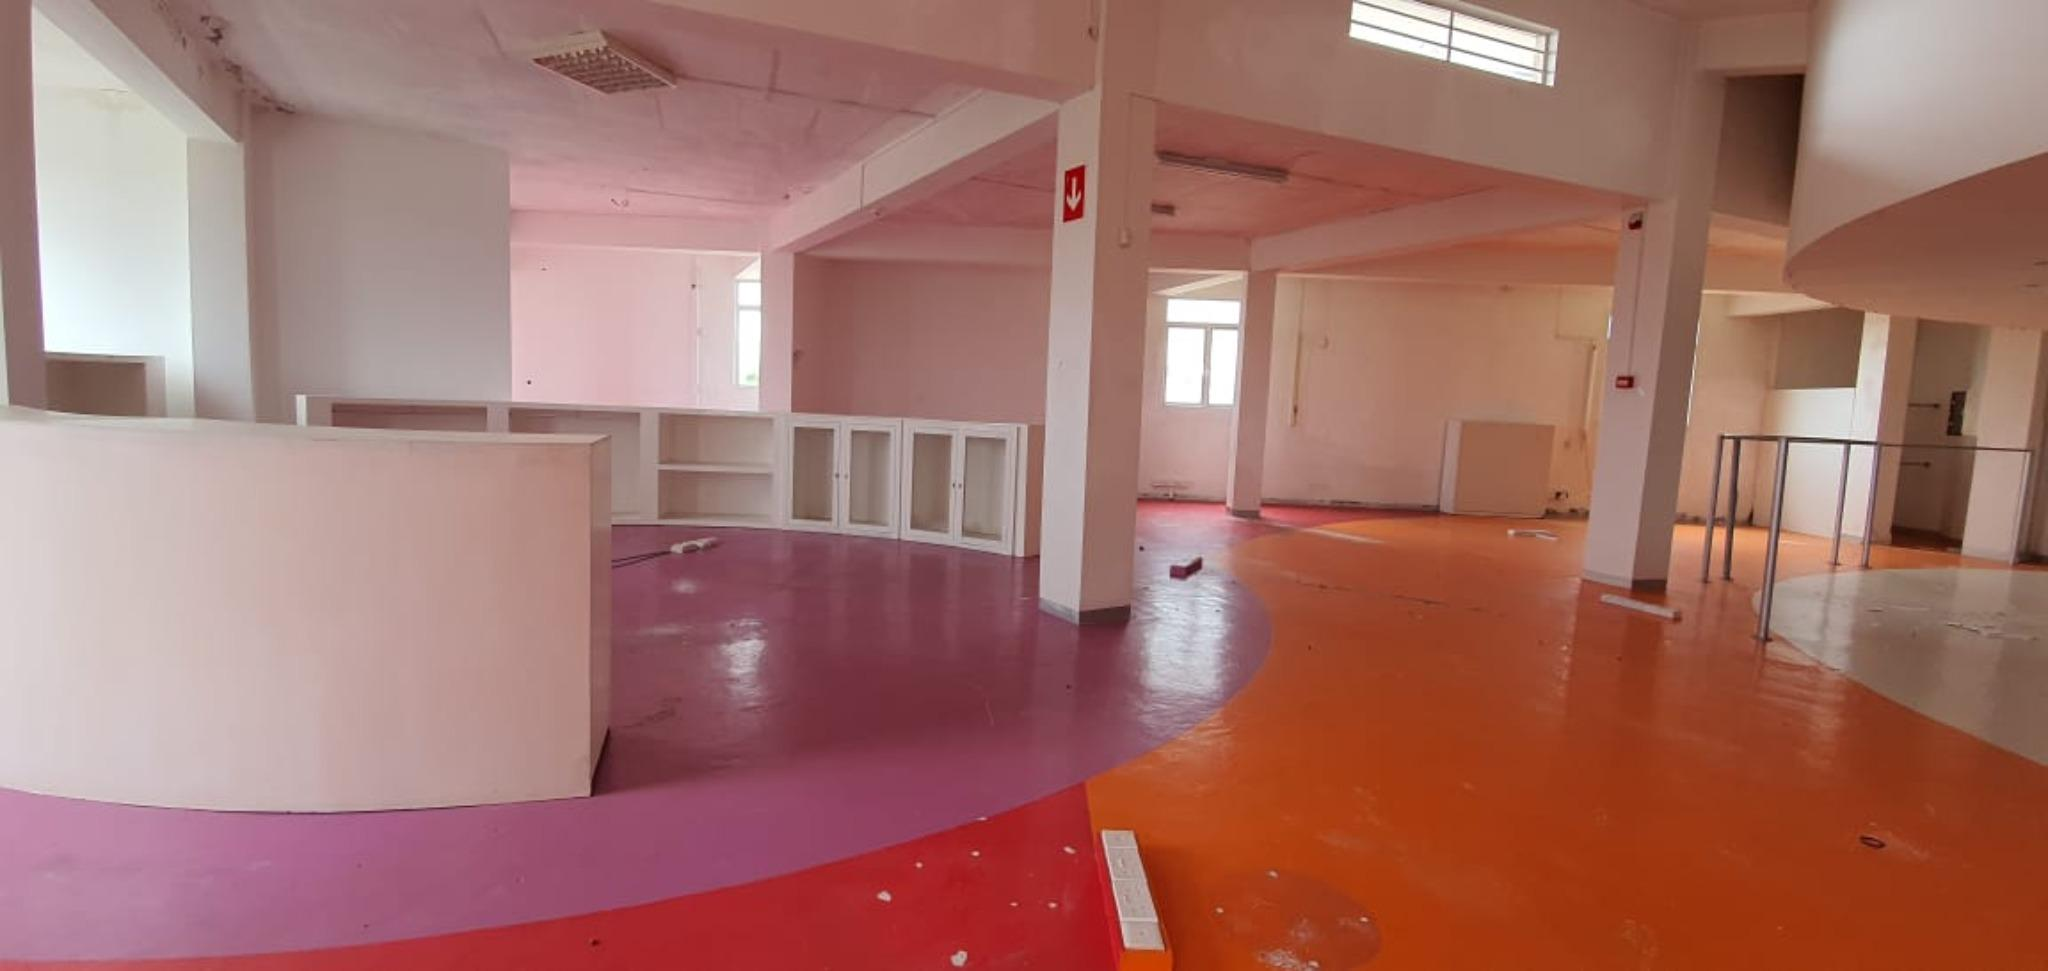 FOR SALE – Unfurnished commercial building on the main road in Mesnil.